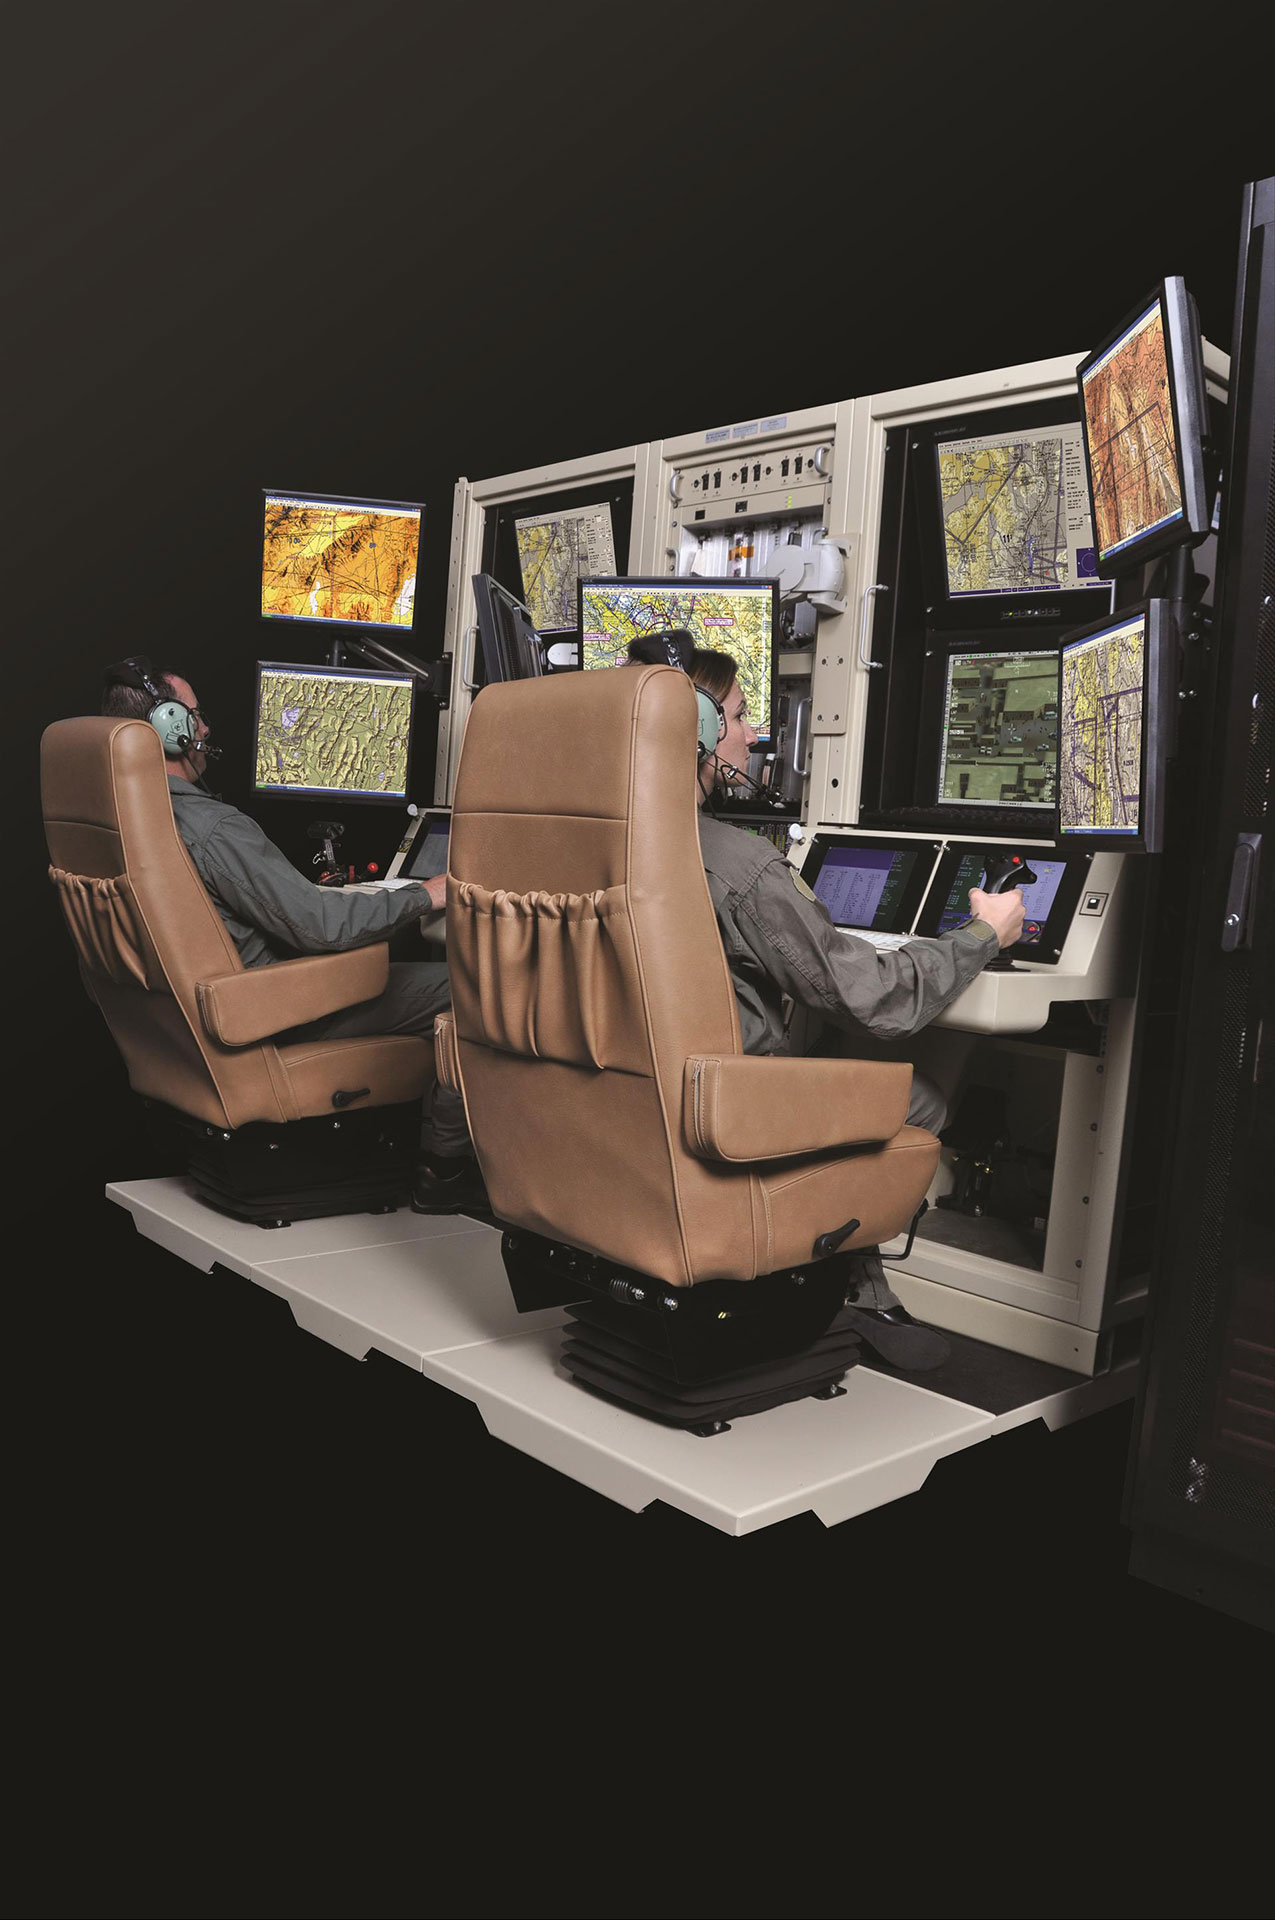 The Predator Mission Aircrew Training System (PMATS)